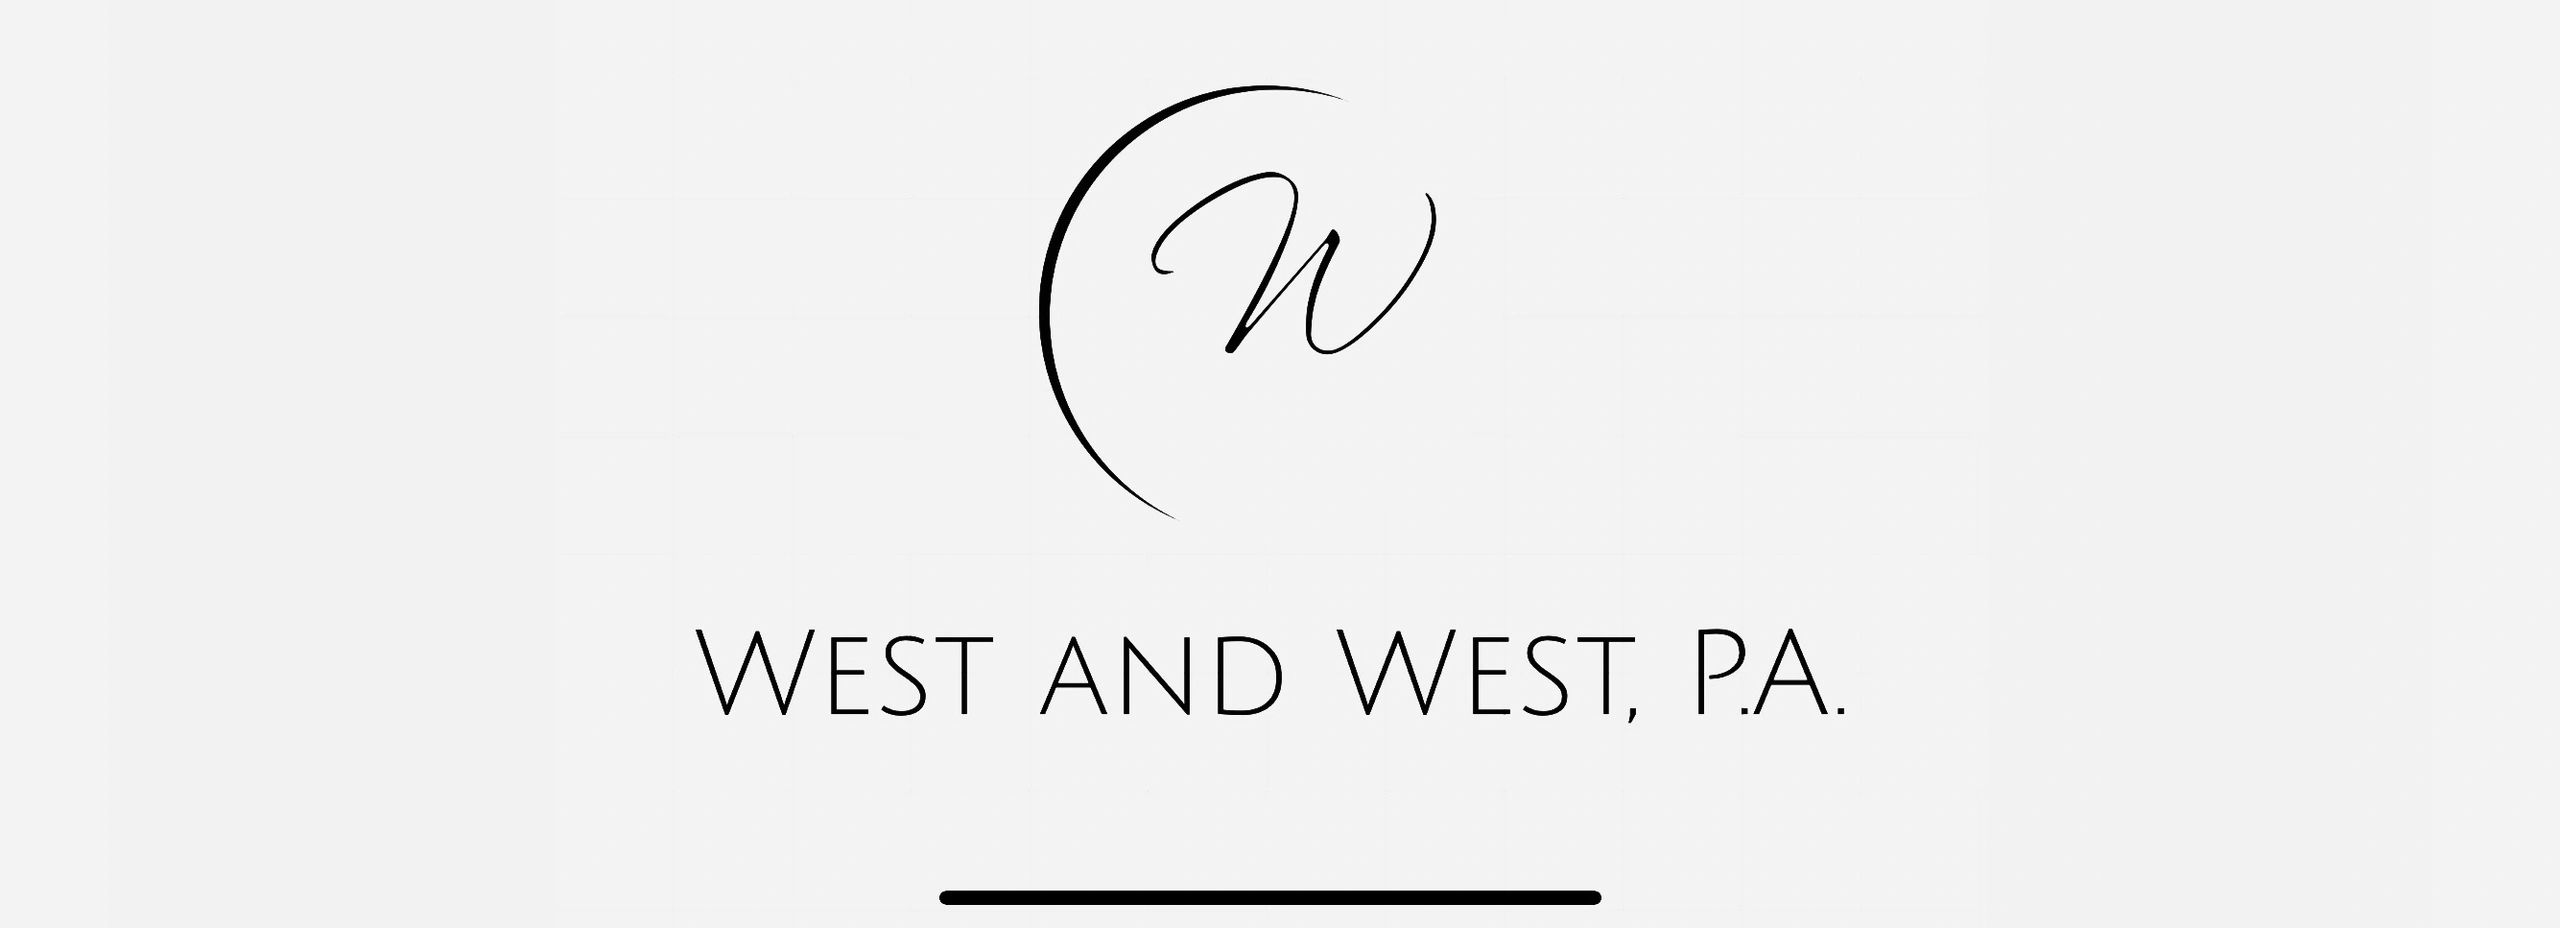 West and West, P.A. Our family of attorneys, lawyers have served Worcester county since 1954.